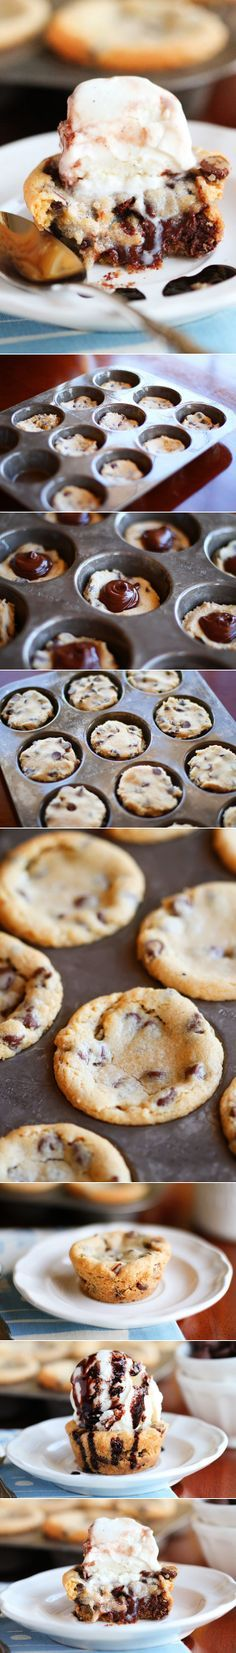 Chocolate Chip Lava Cookies Recipe - (kevinandamanda)